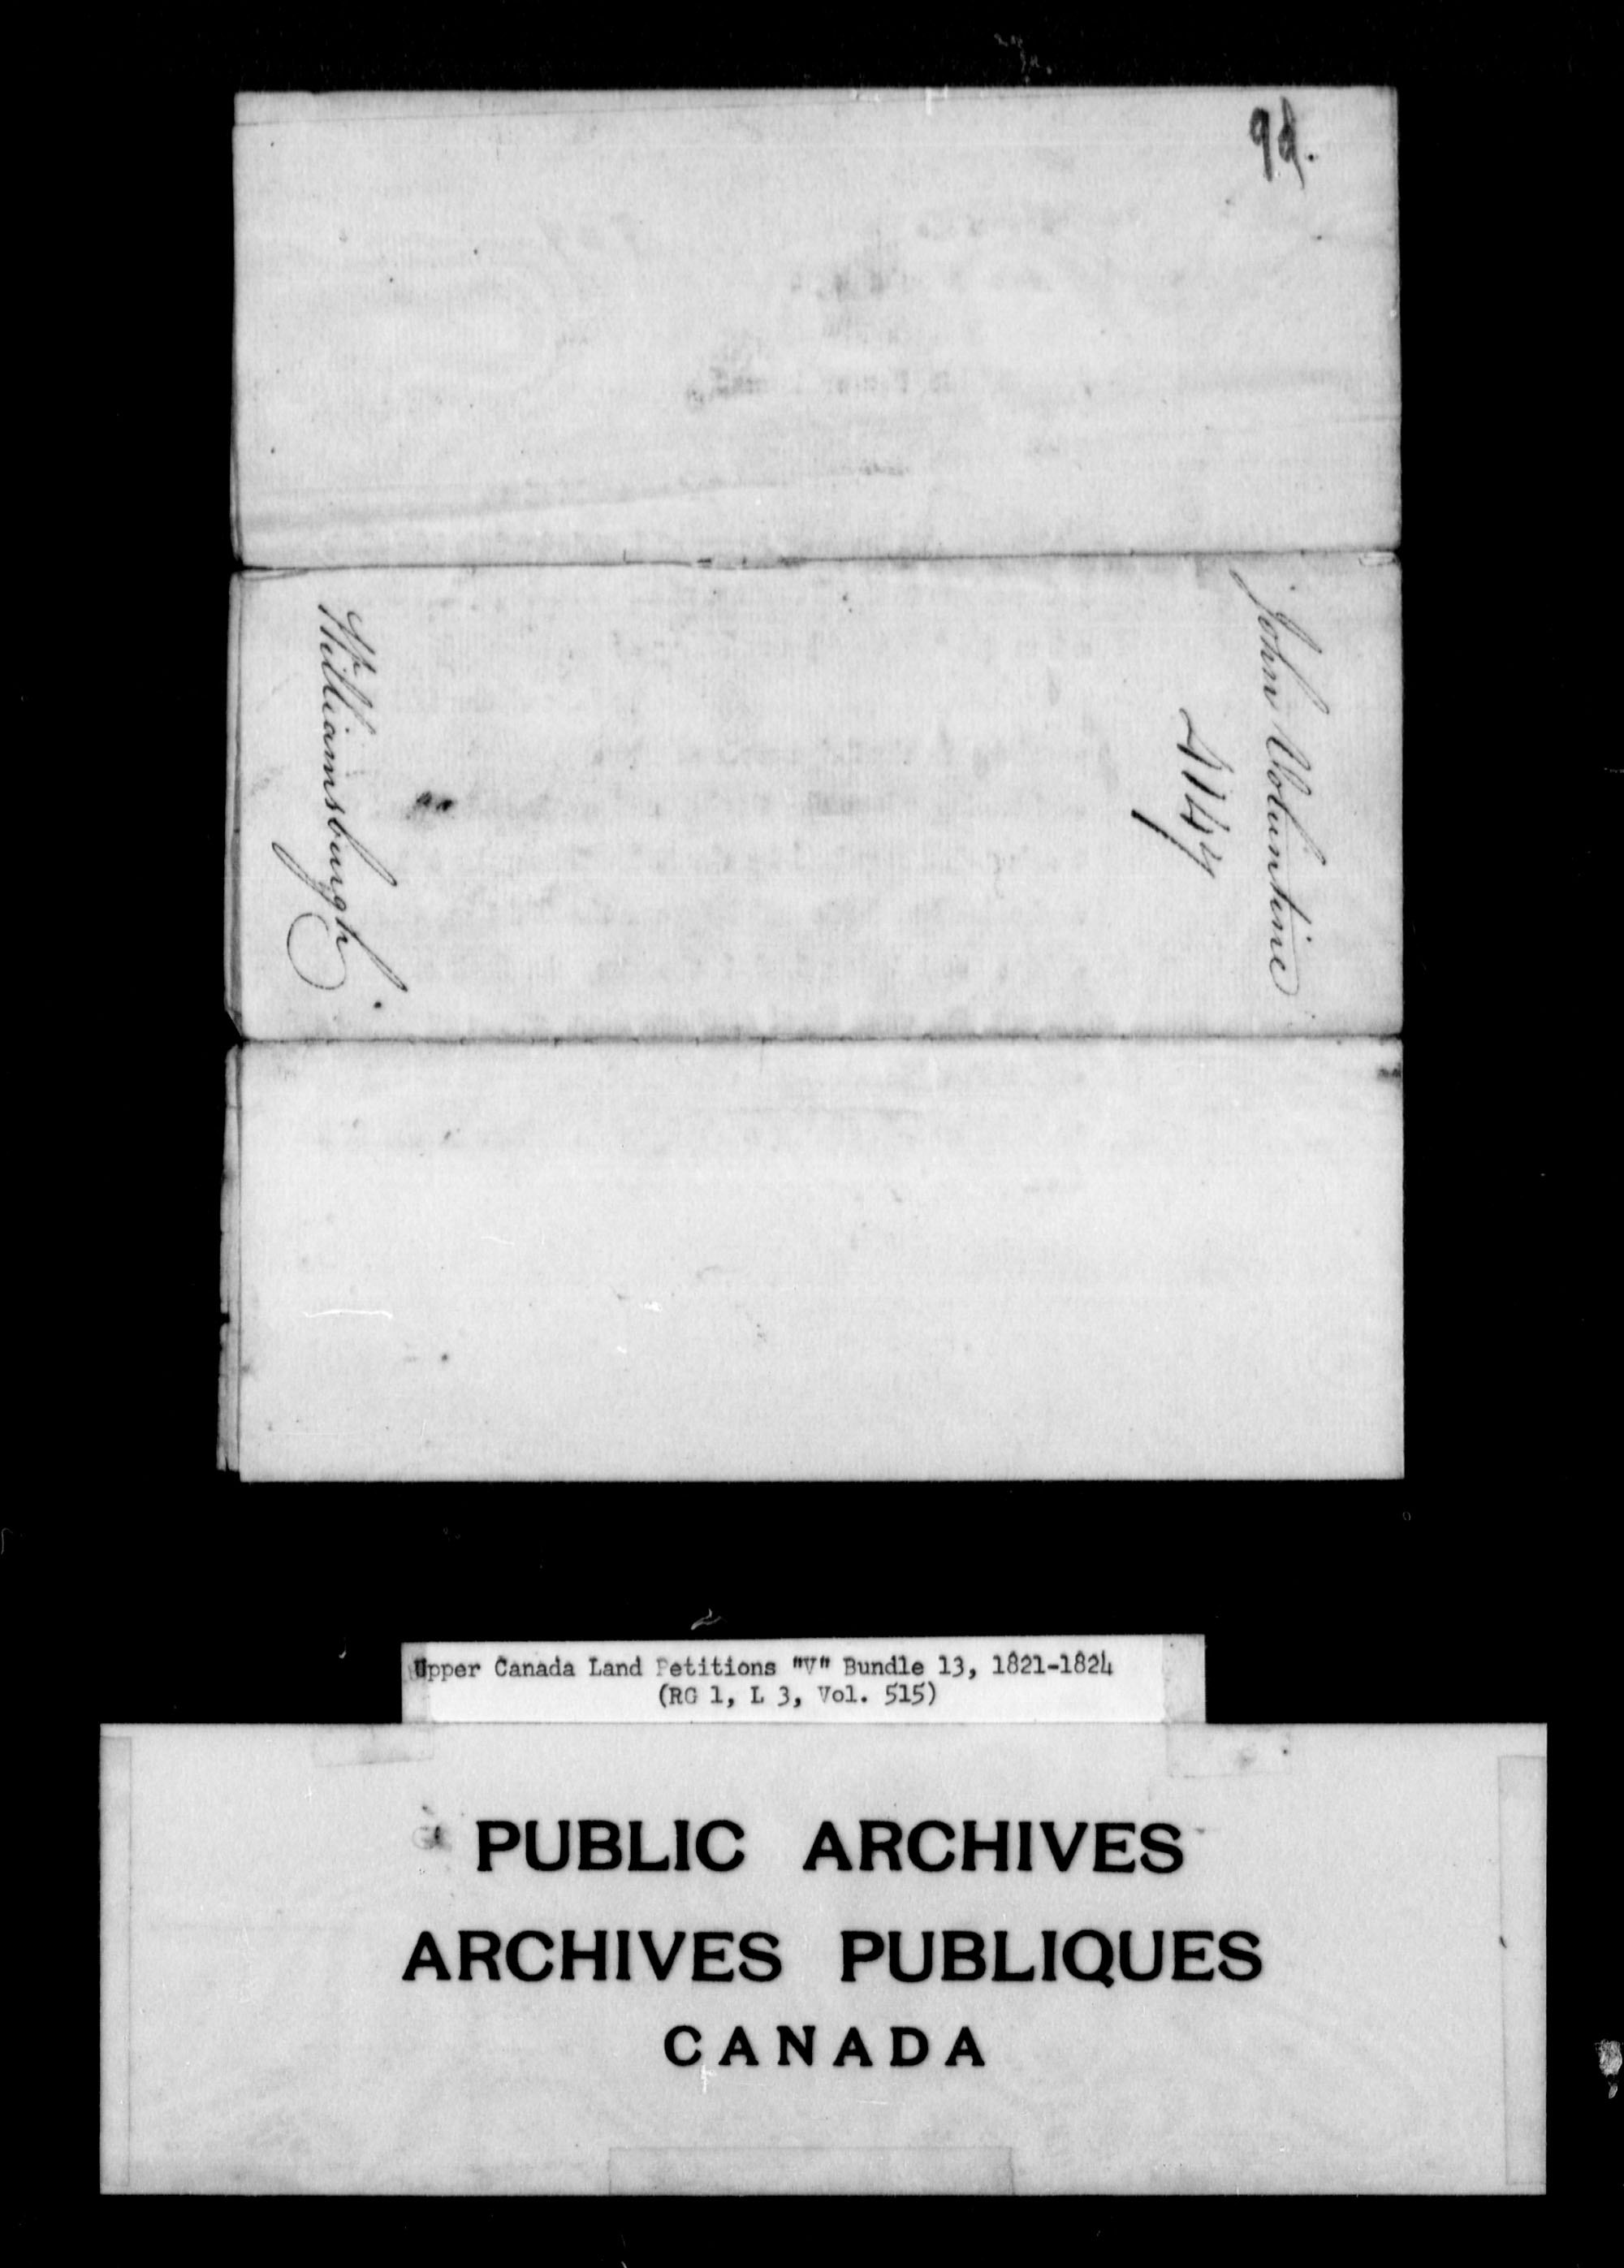 Title: Upper Canada Land Petitions (1763-1865) - Mikan Number: 205131 - Microform: c-2947